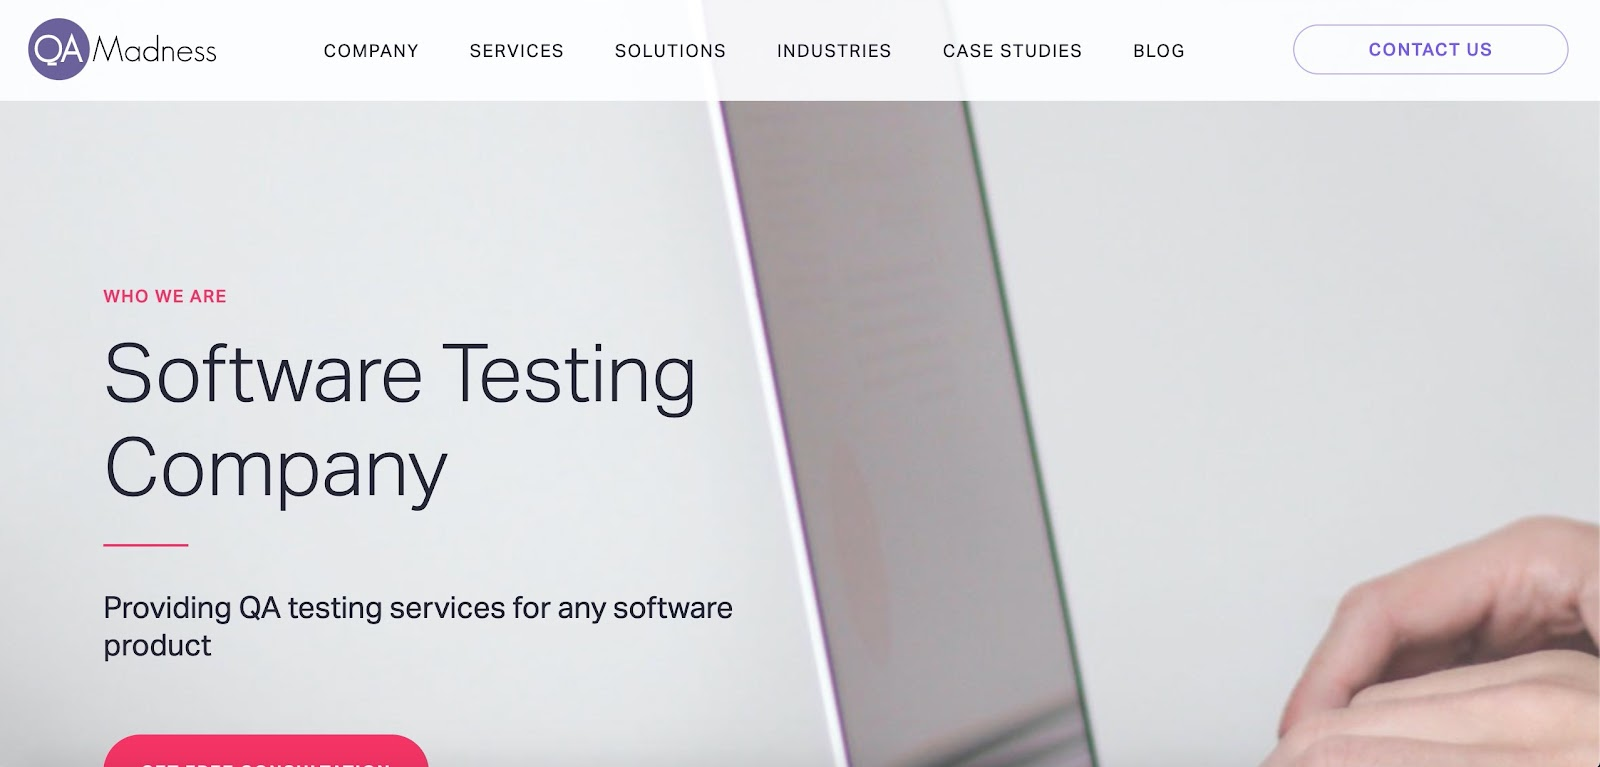 QA Madness is one of the Software Testing Companies